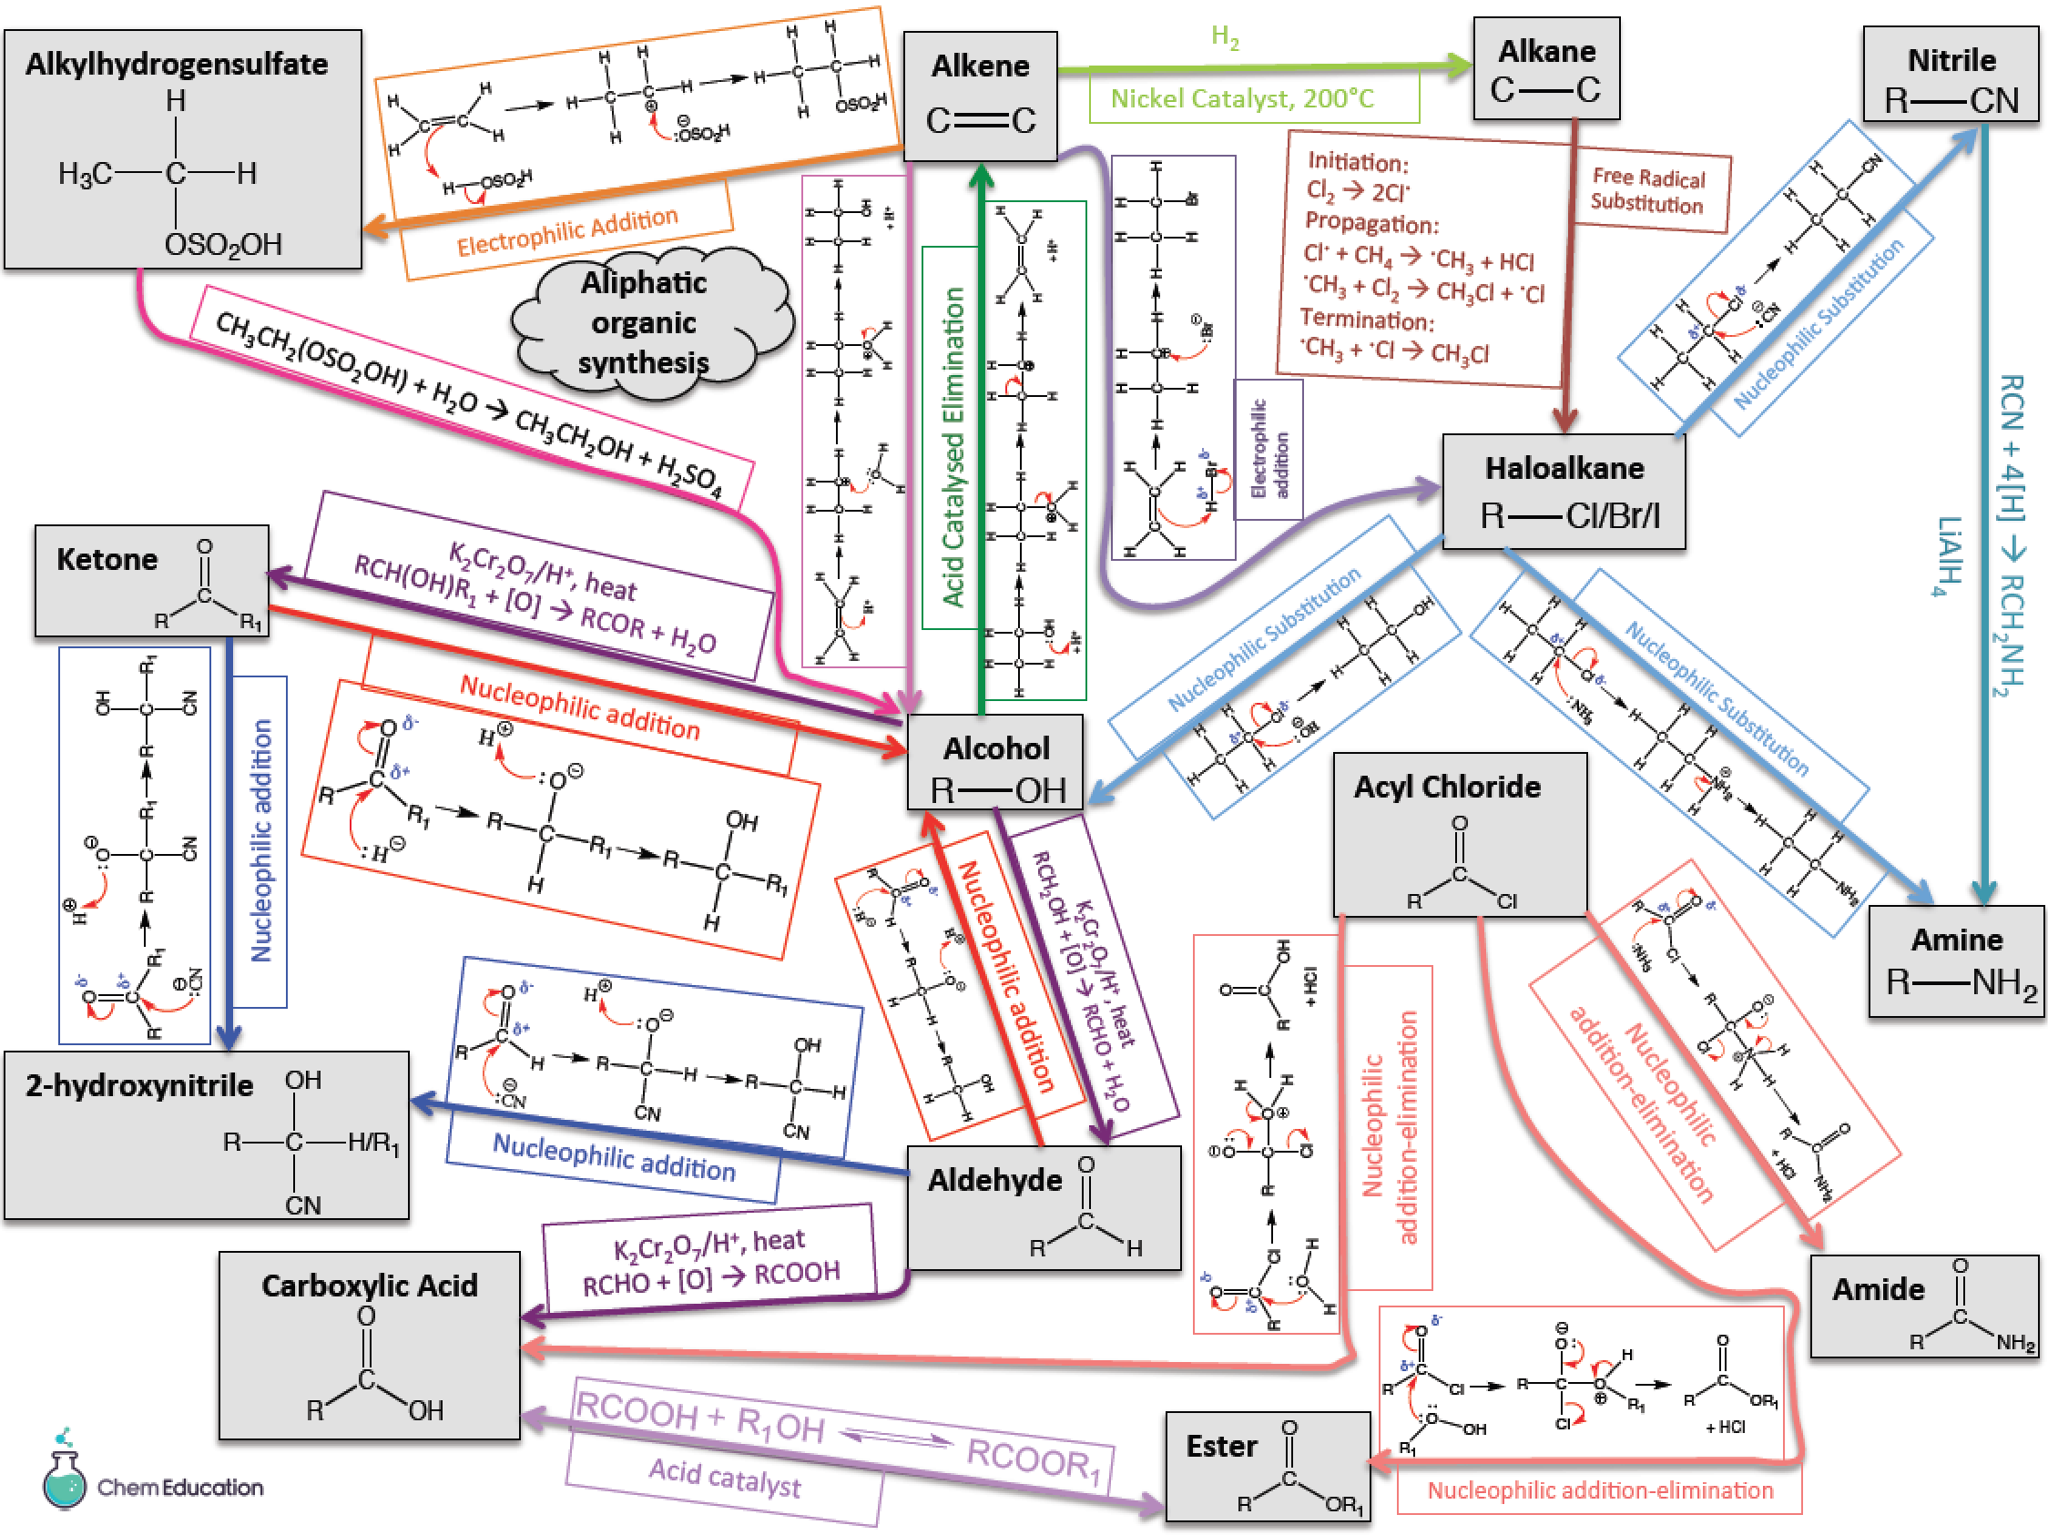 Summary maps of organic pathways - aliphatic and aromatic included